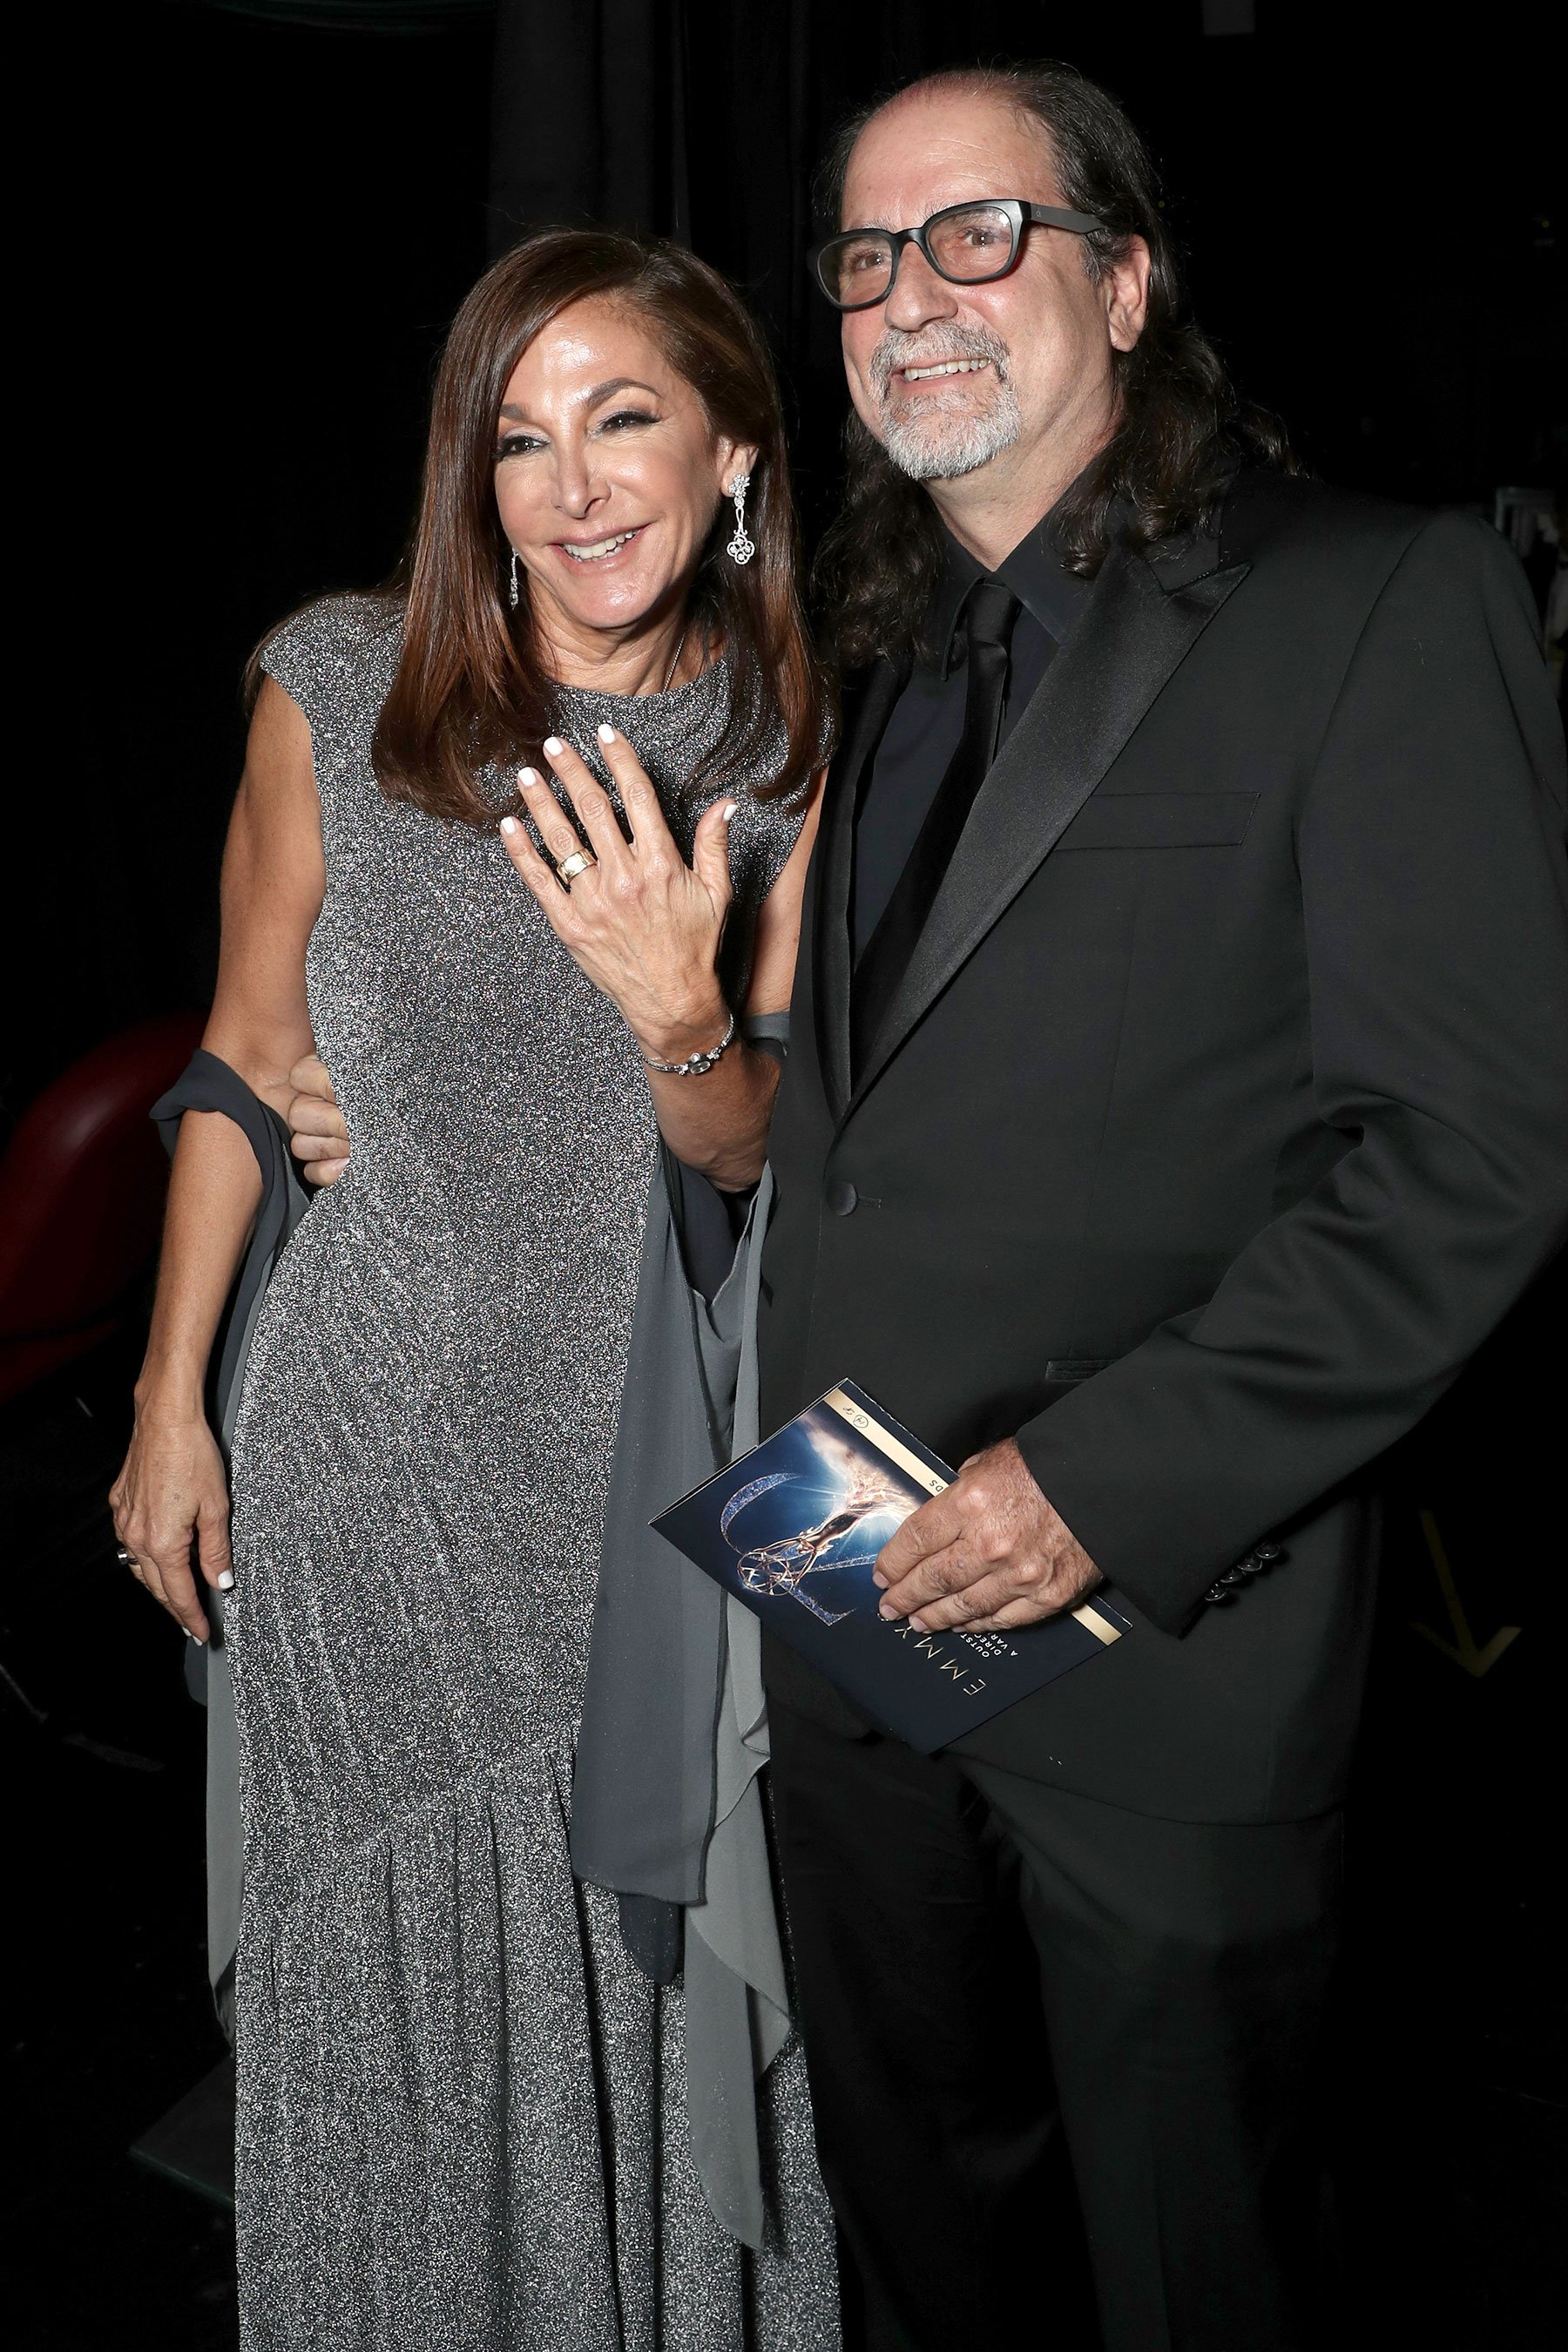 From Co-Workers to a Surprise Emmys Proposal: Inside Glenn Weiss and Jan Svendsen's Love Story